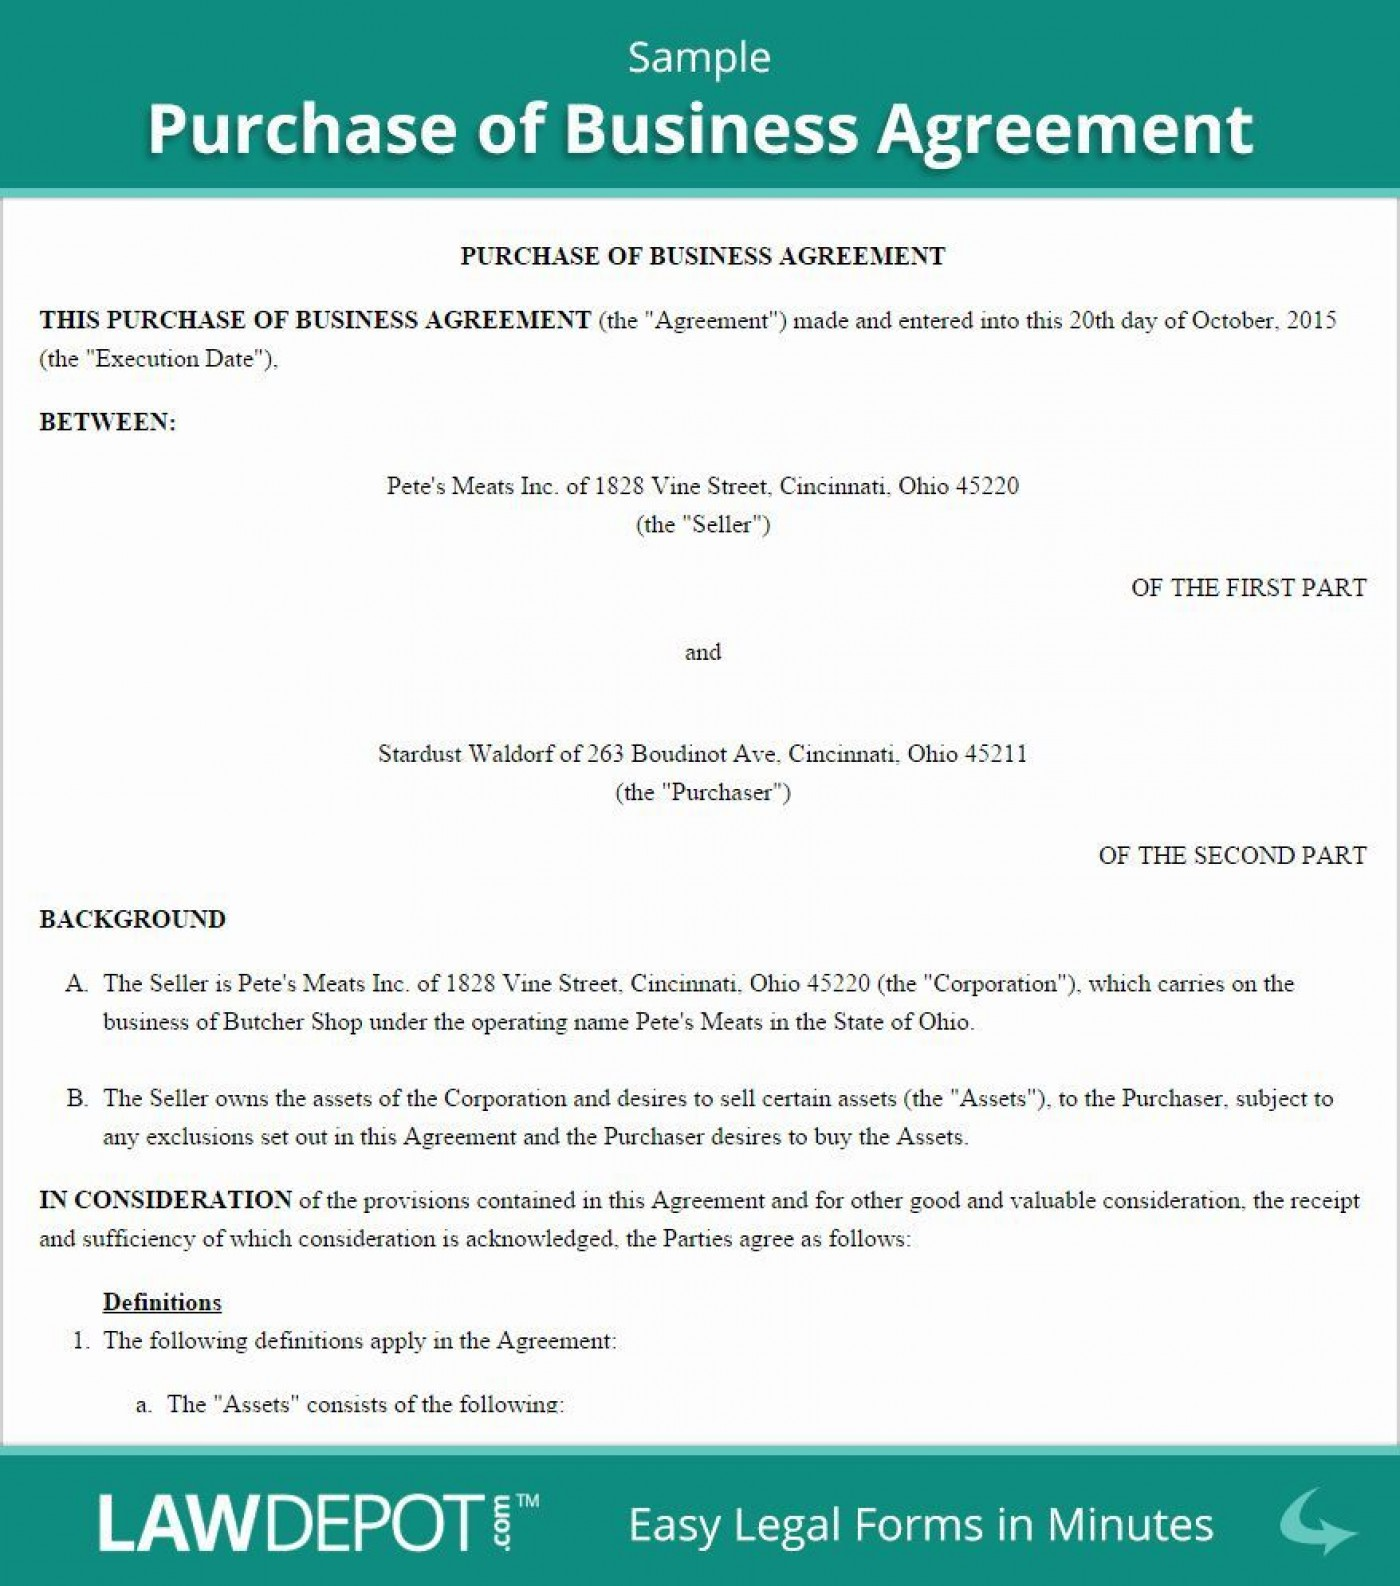 001 Awesome Busines Sale Agreement Template Image  Western Australia Free Uk Download South Africa1400